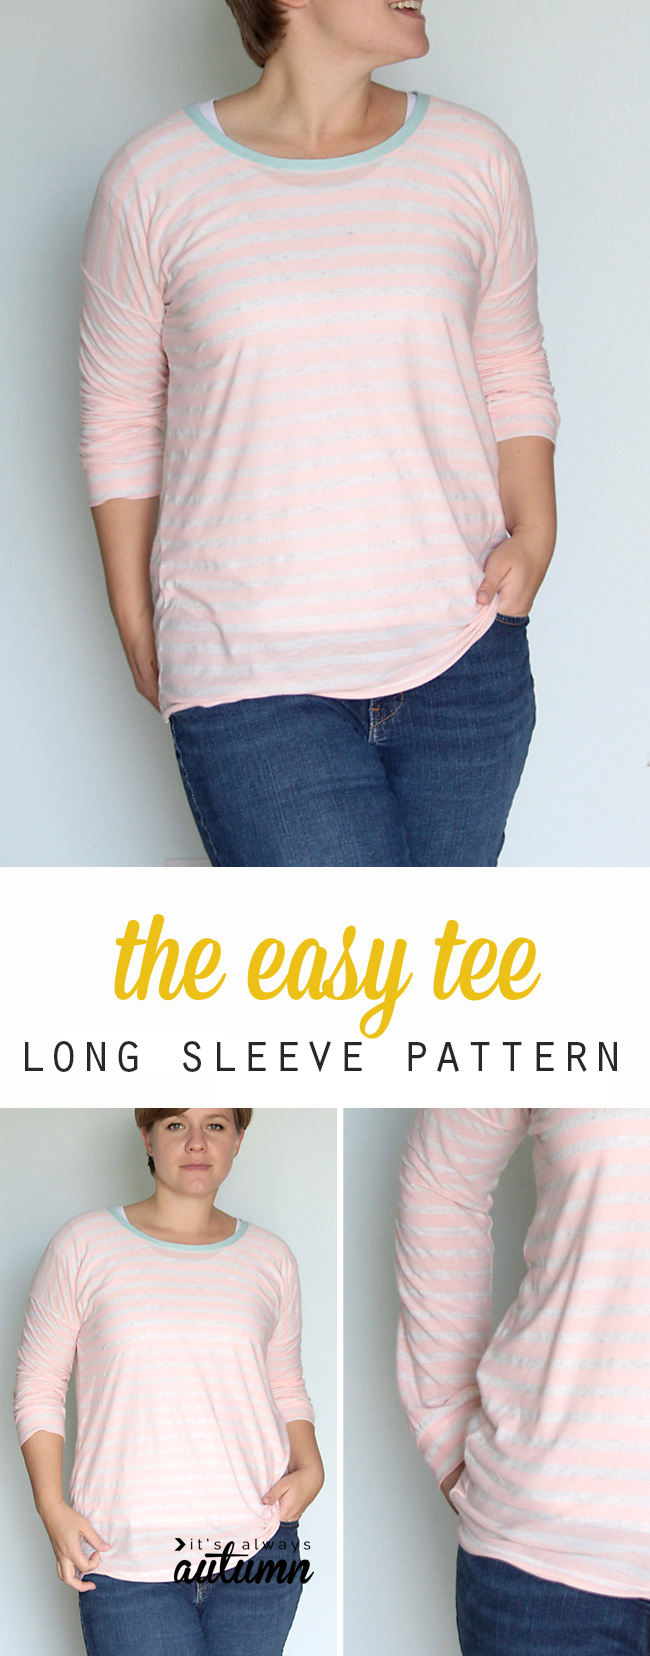 Learn how to sew this comfy long sleeve tee using an easy t-shirt pattern. Free sewing pattern.